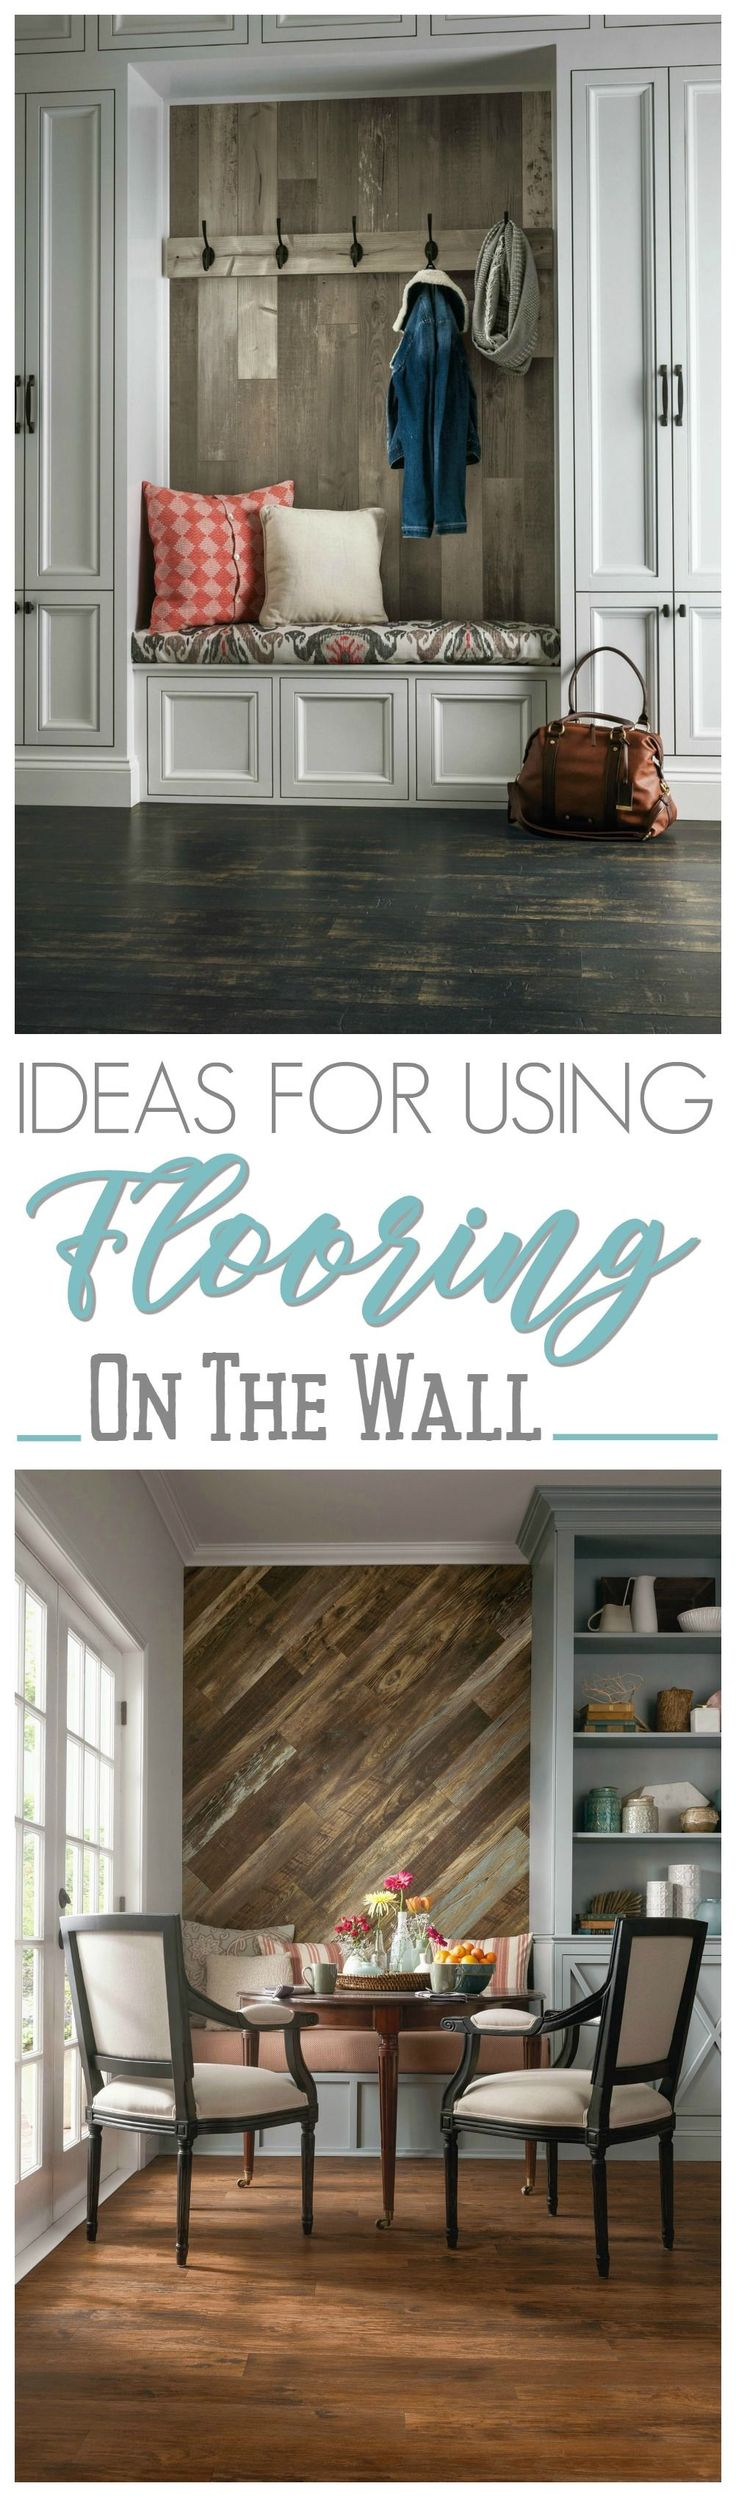 Window wall design ideas pinterest nyc home and accent walls - Wood Feature Accent Wall Ideas Using Flooring